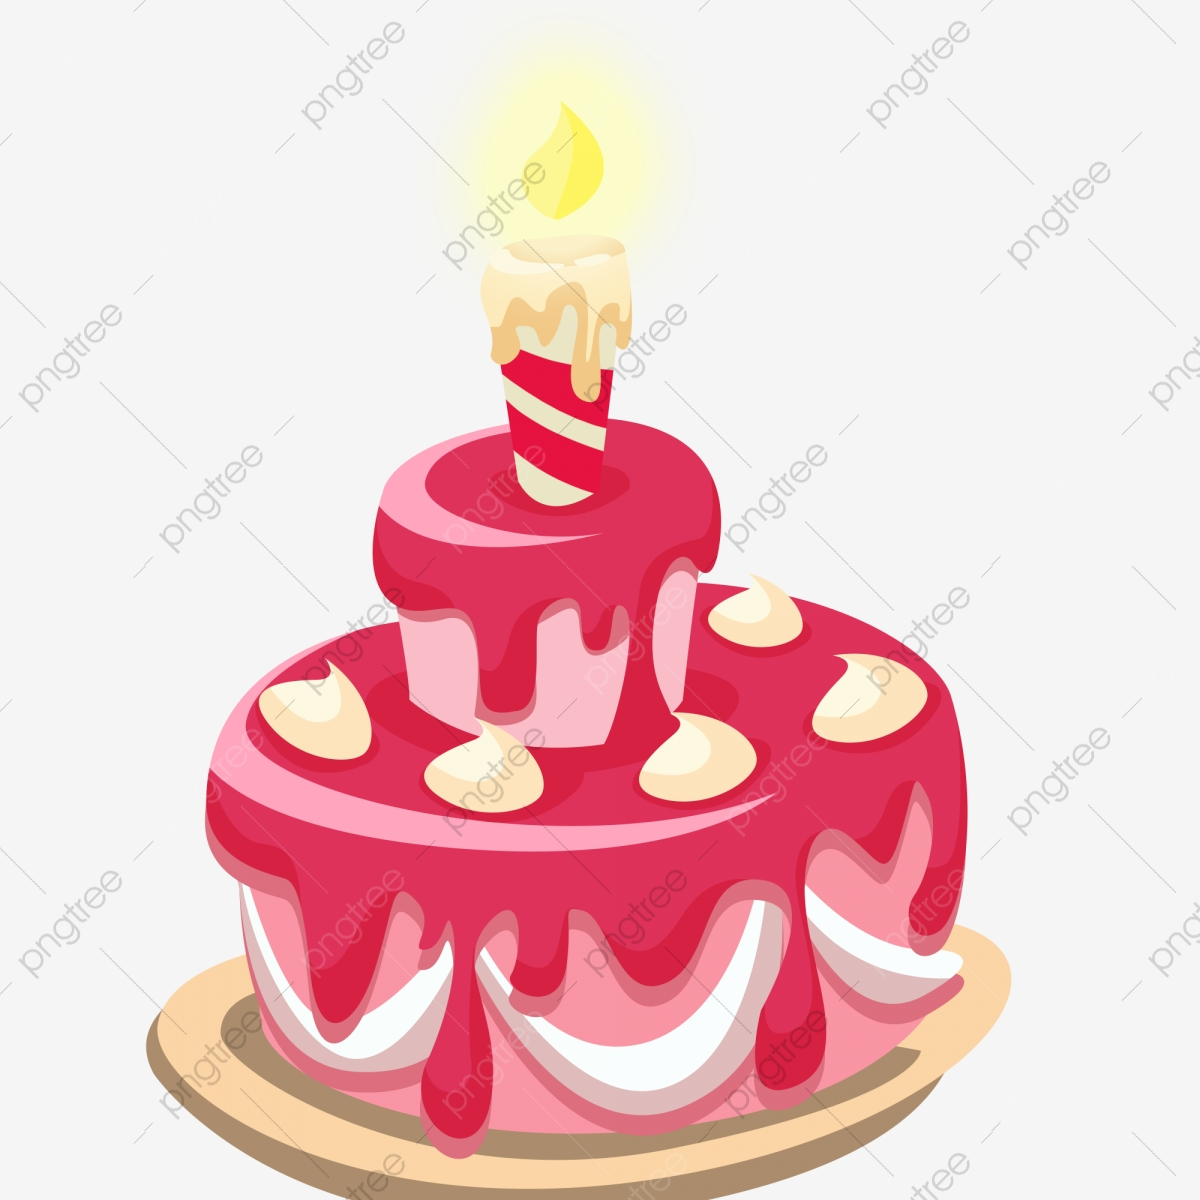 Cake With Candles Red Cake Small Cake Cartoon Cake, Cake.